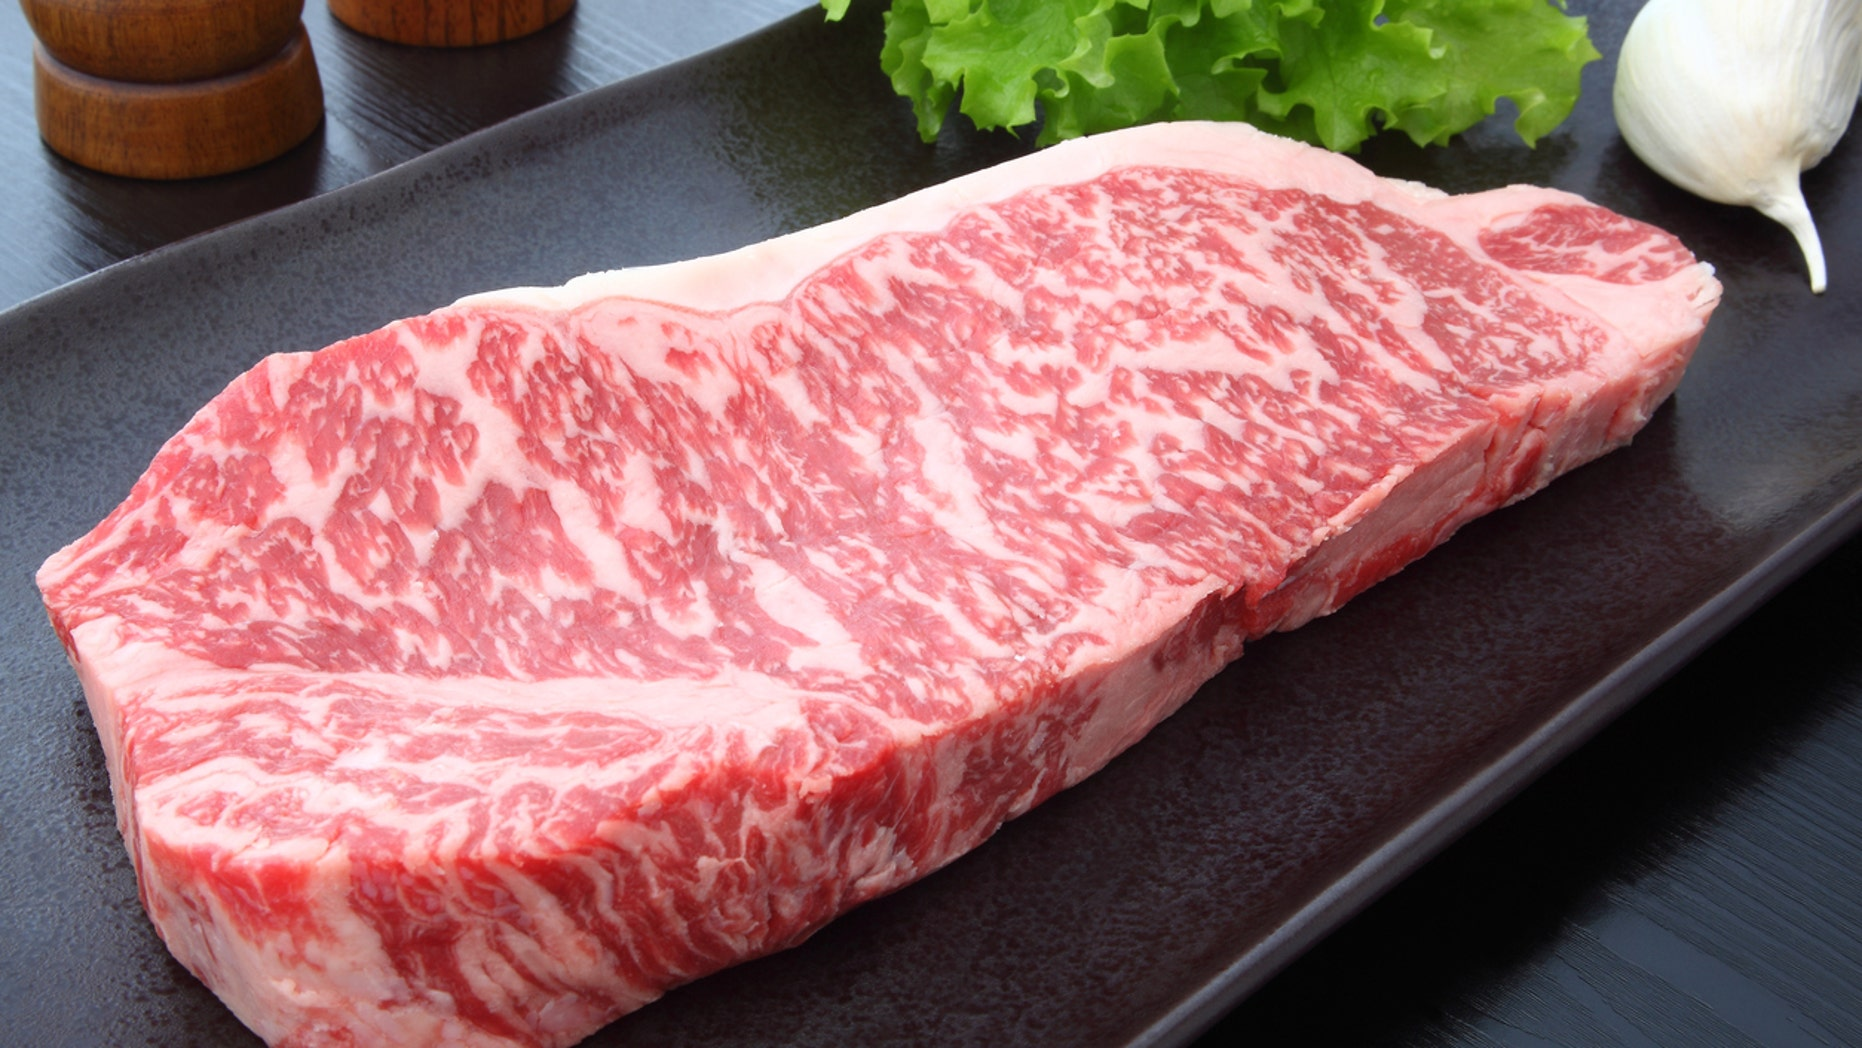 Wagyu beef is coming to San Francisco with a hefty price tag.